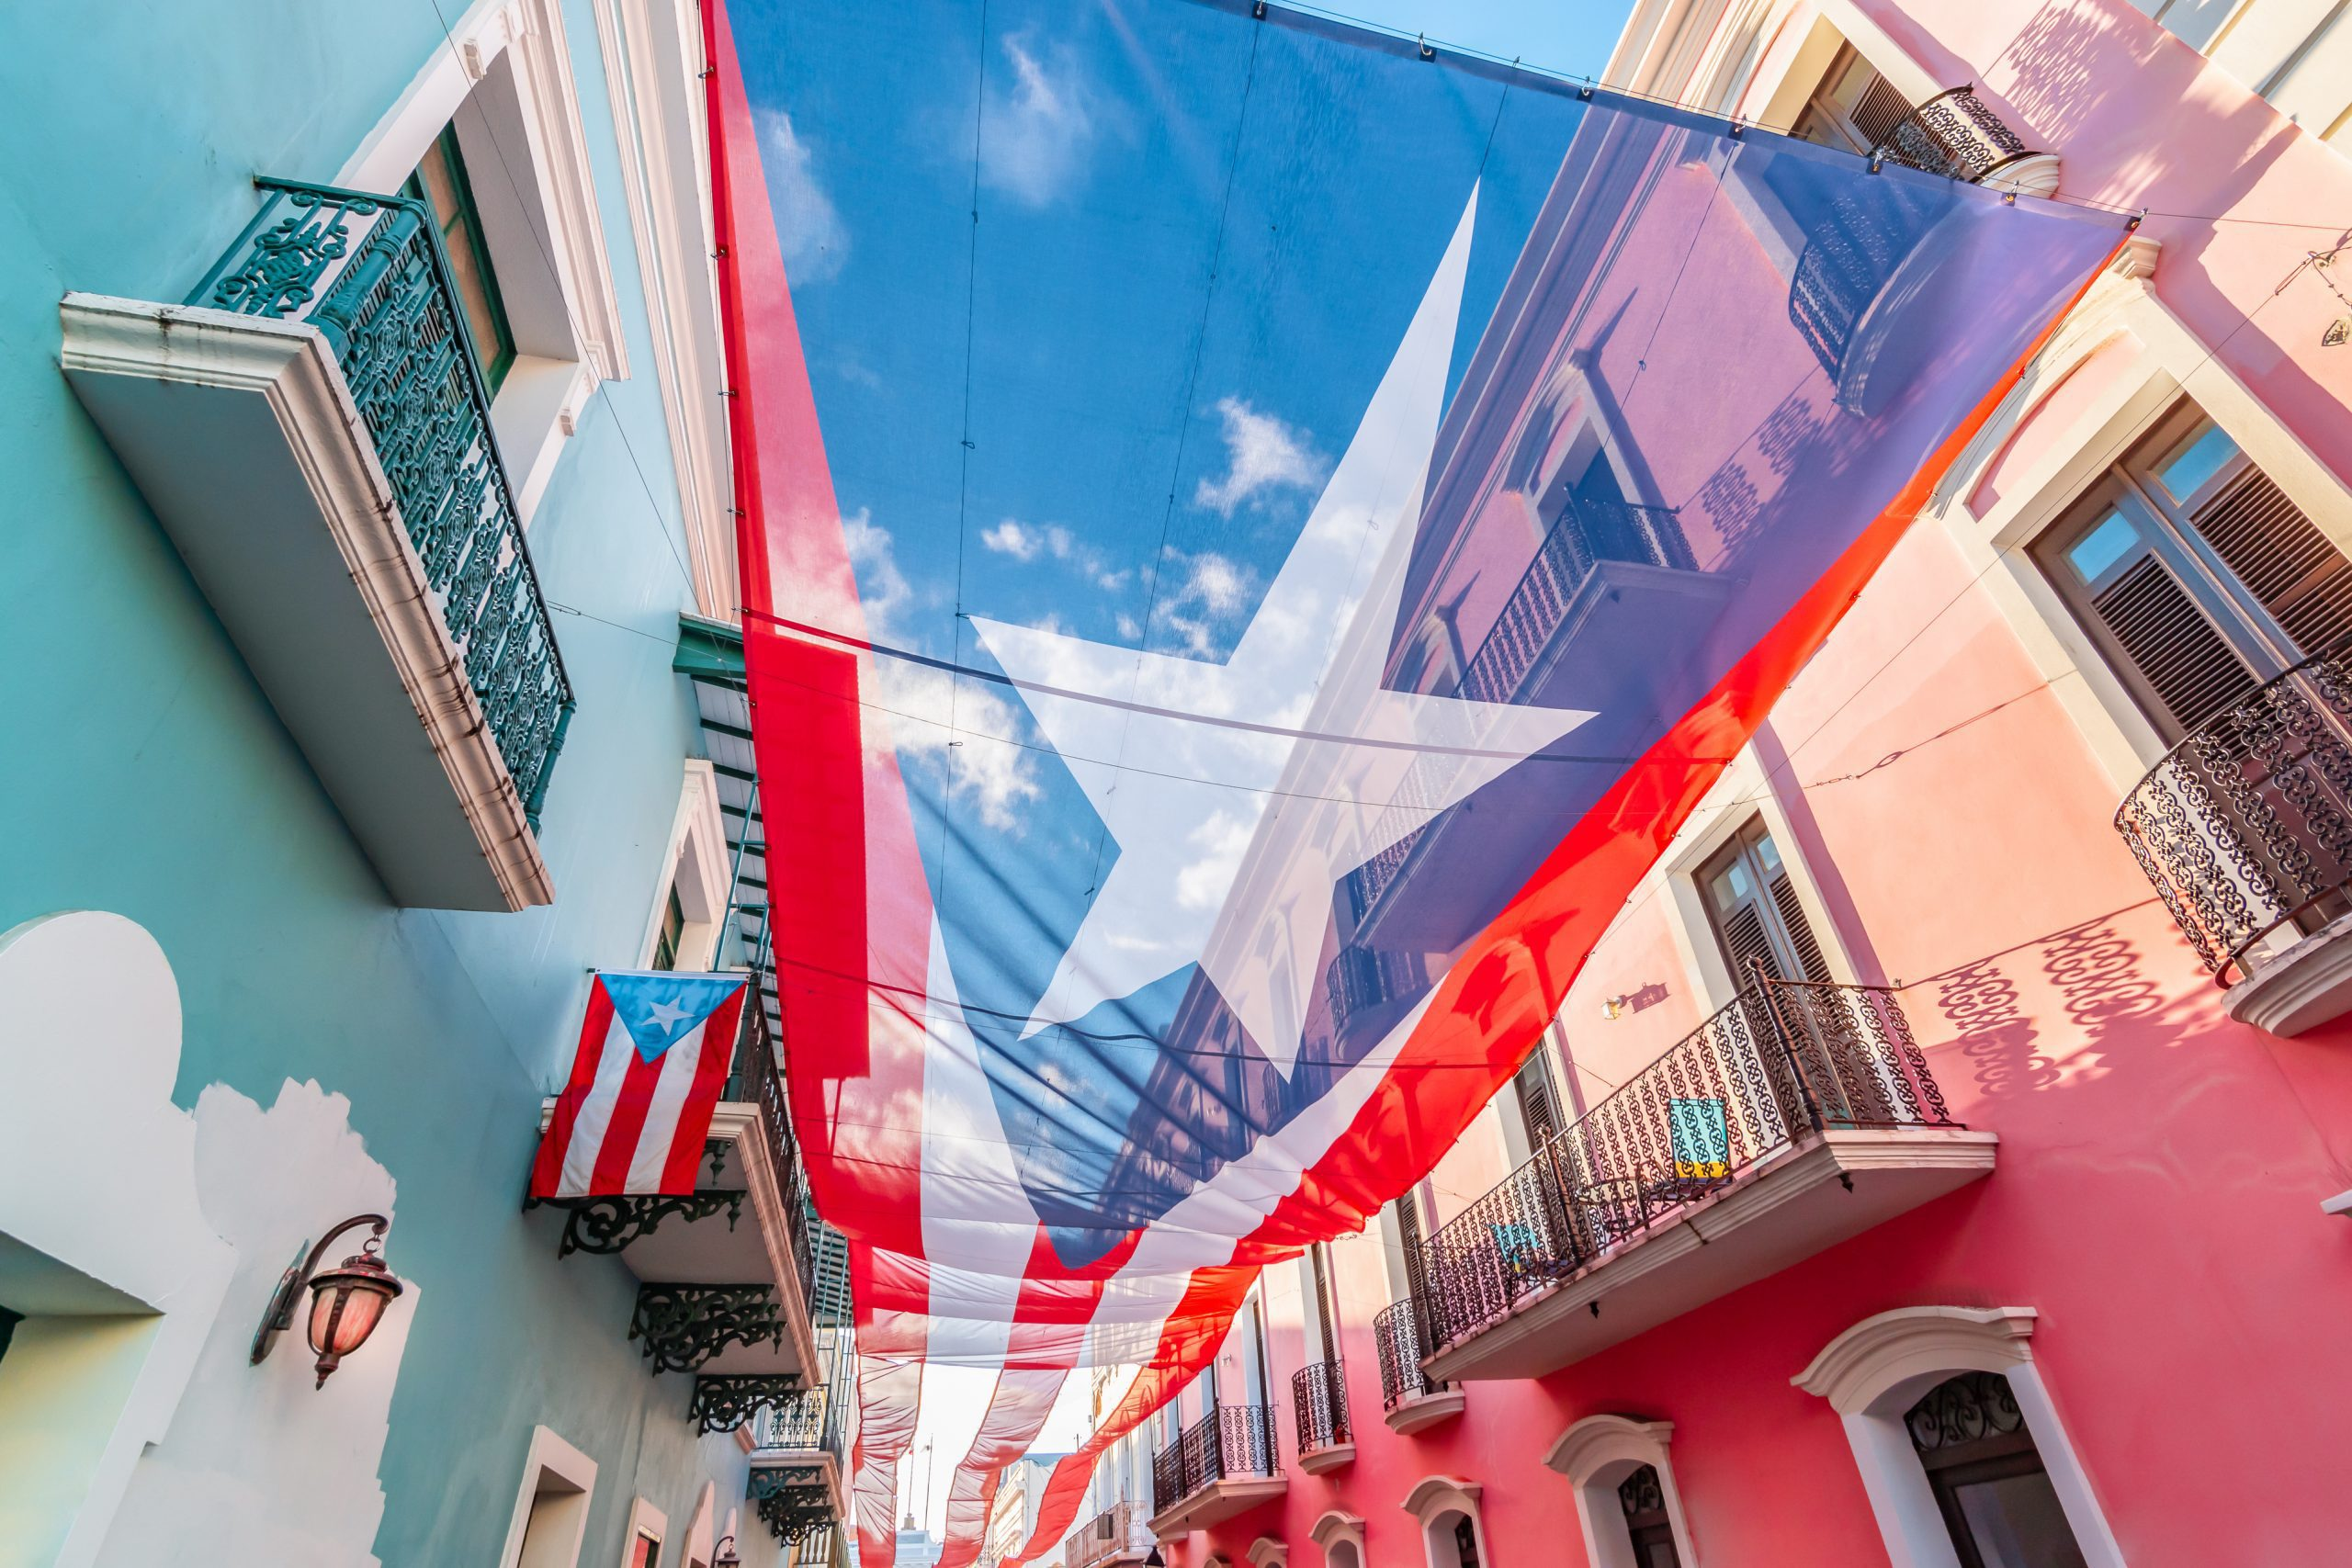 Colorful image of city centre of San Juan with large Puerto Rican flag above the street. Blue and pink buildings in the street. Sunny day. Red and white stripes, white star and blue colored national flag of Puerto Rico.